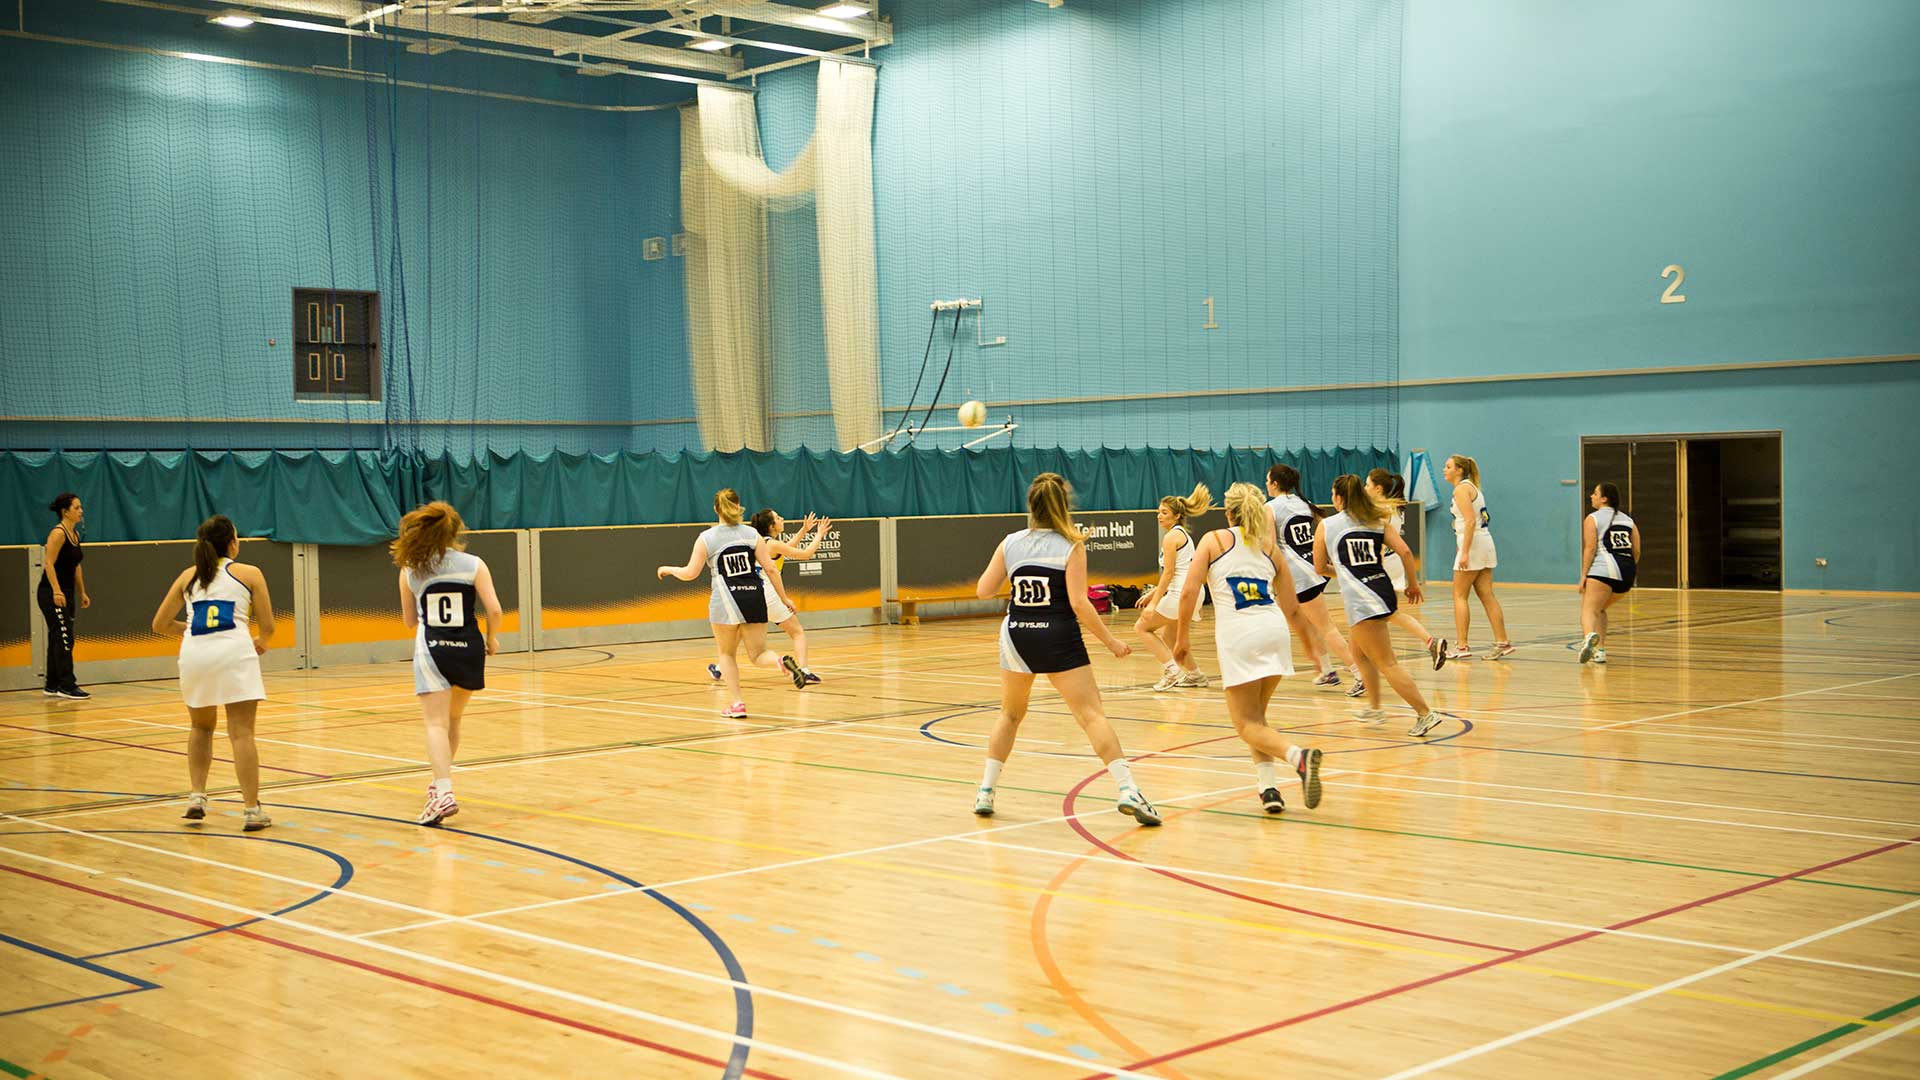 Sexual health qualifications uk basketball